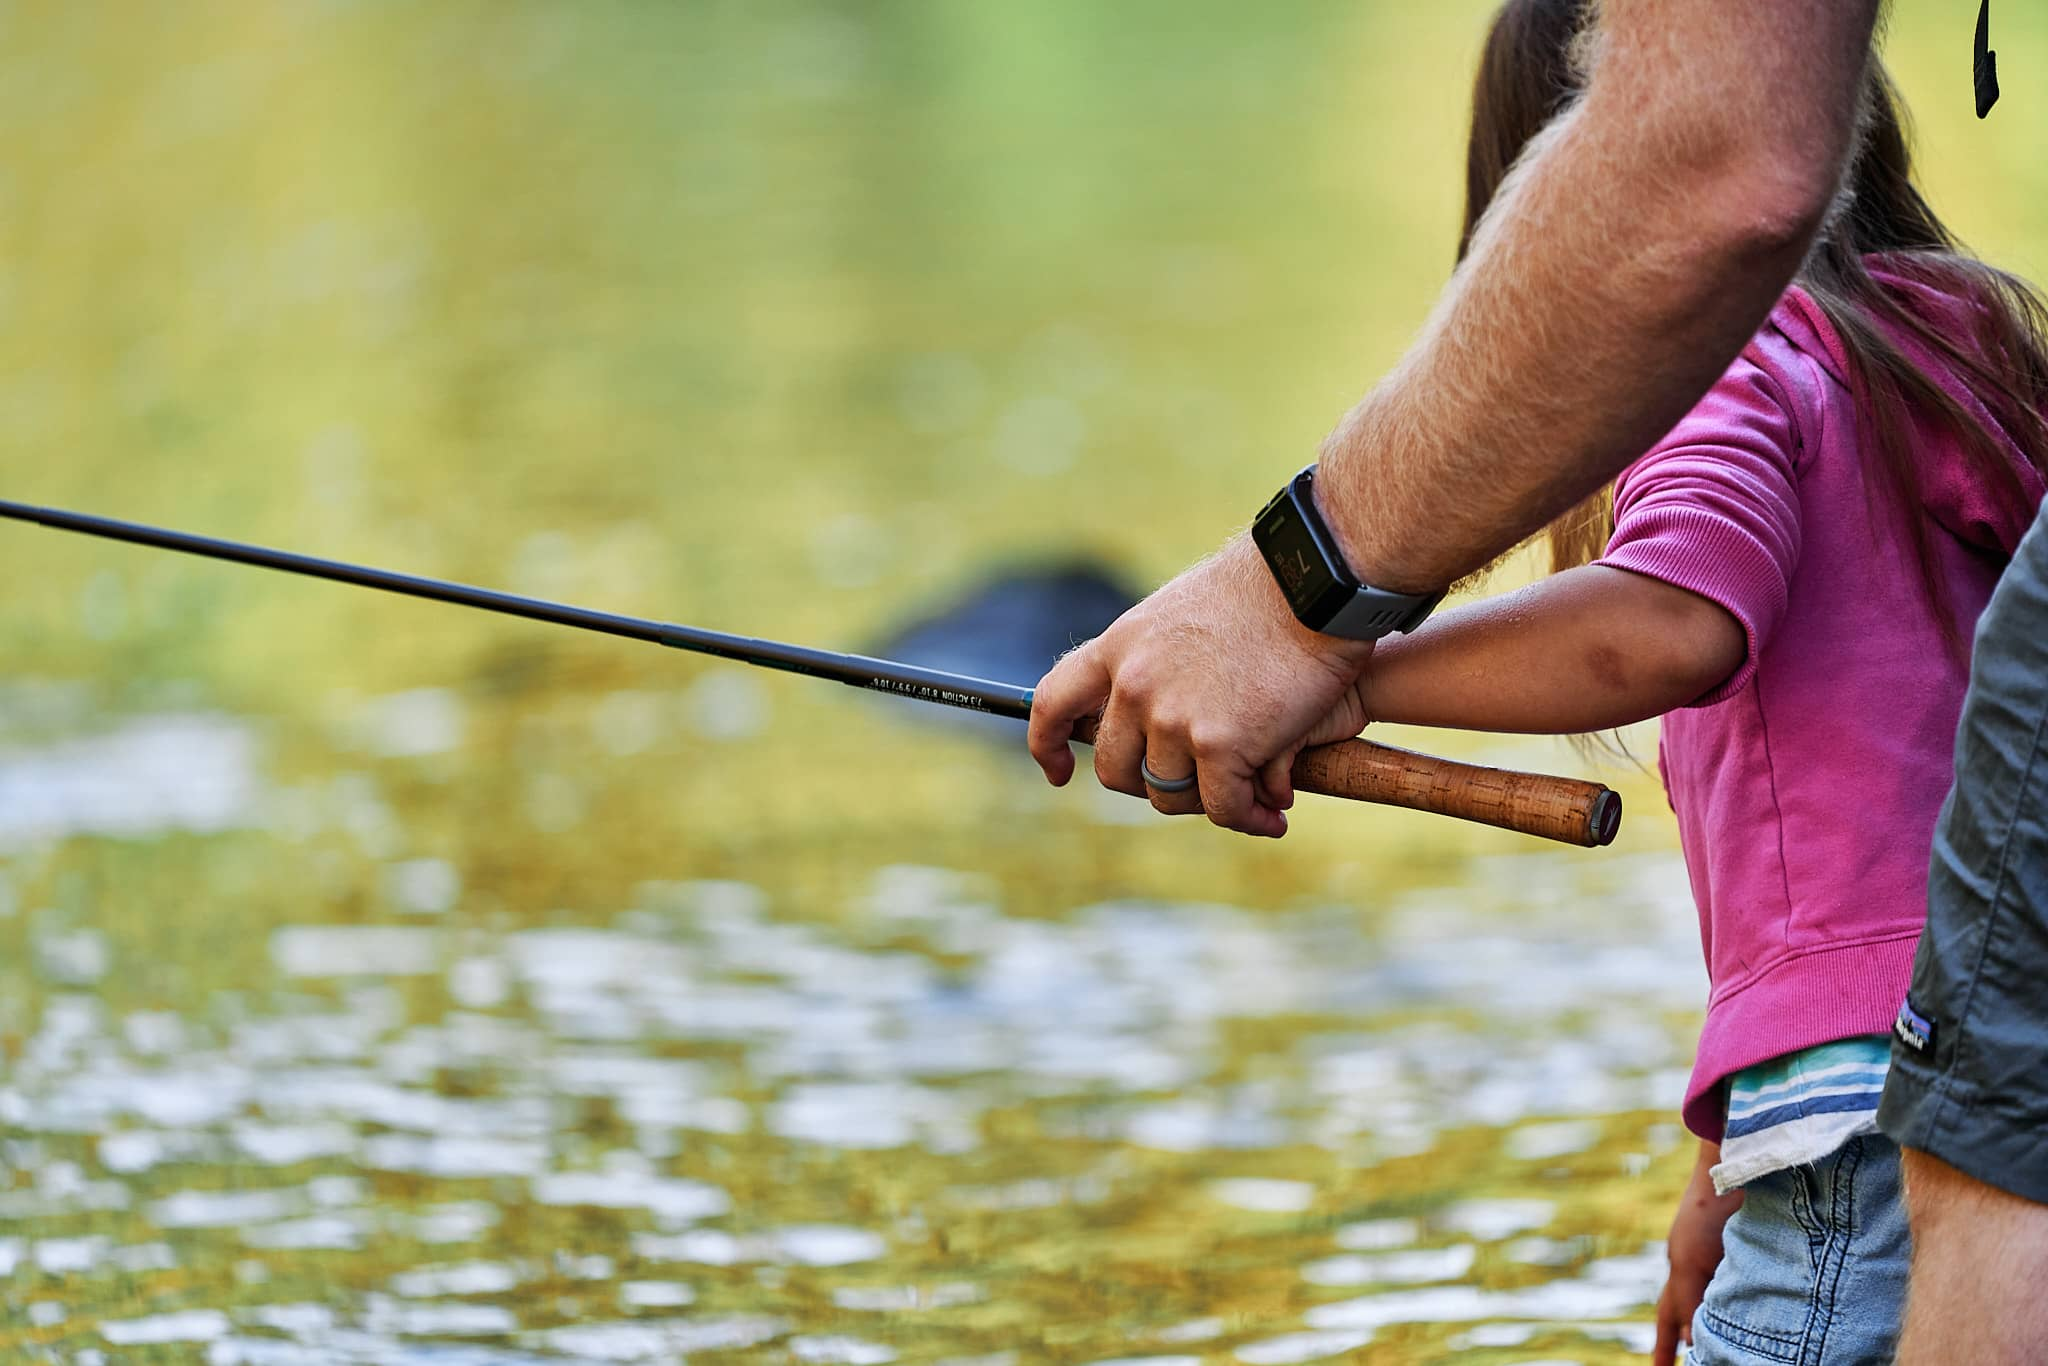 Dad and daughter gripping a Tenkara rod